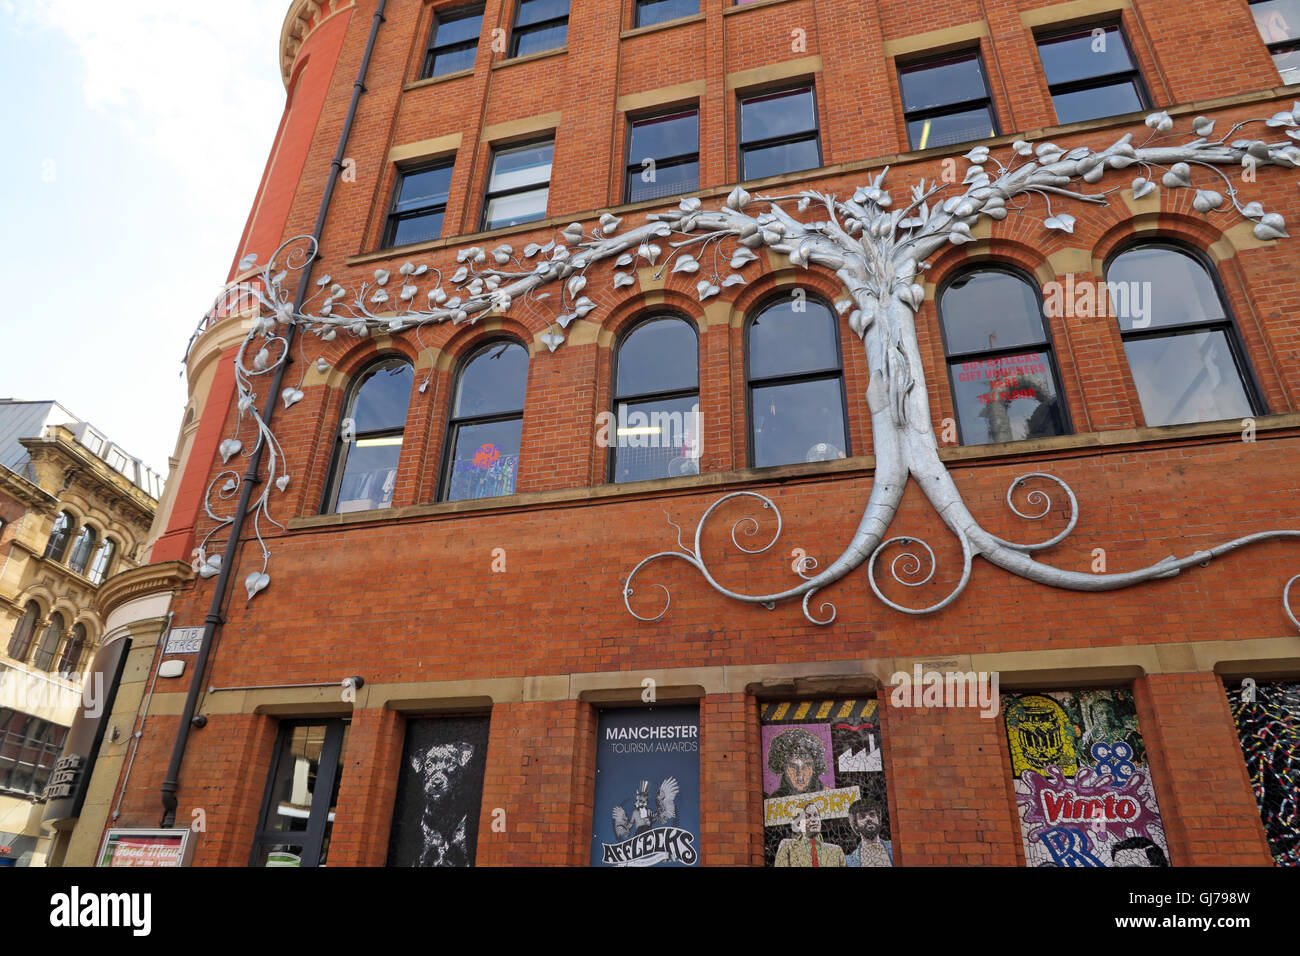 Afflecks Palace Manchester - Alternative fashion emporium - Stock Image